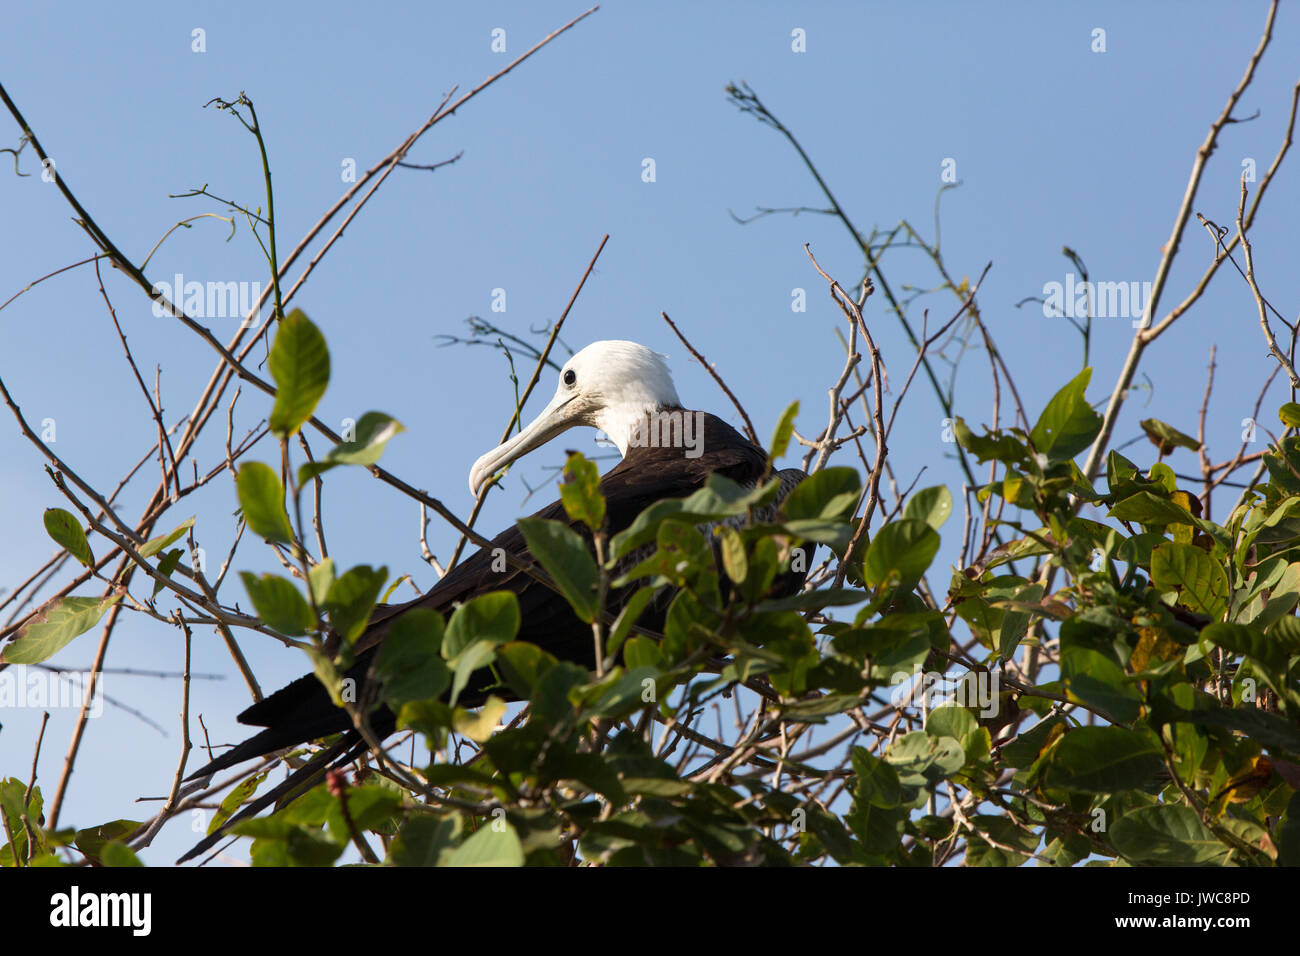 An immature male frigate bird roosts atop tree branches. - Stock Image